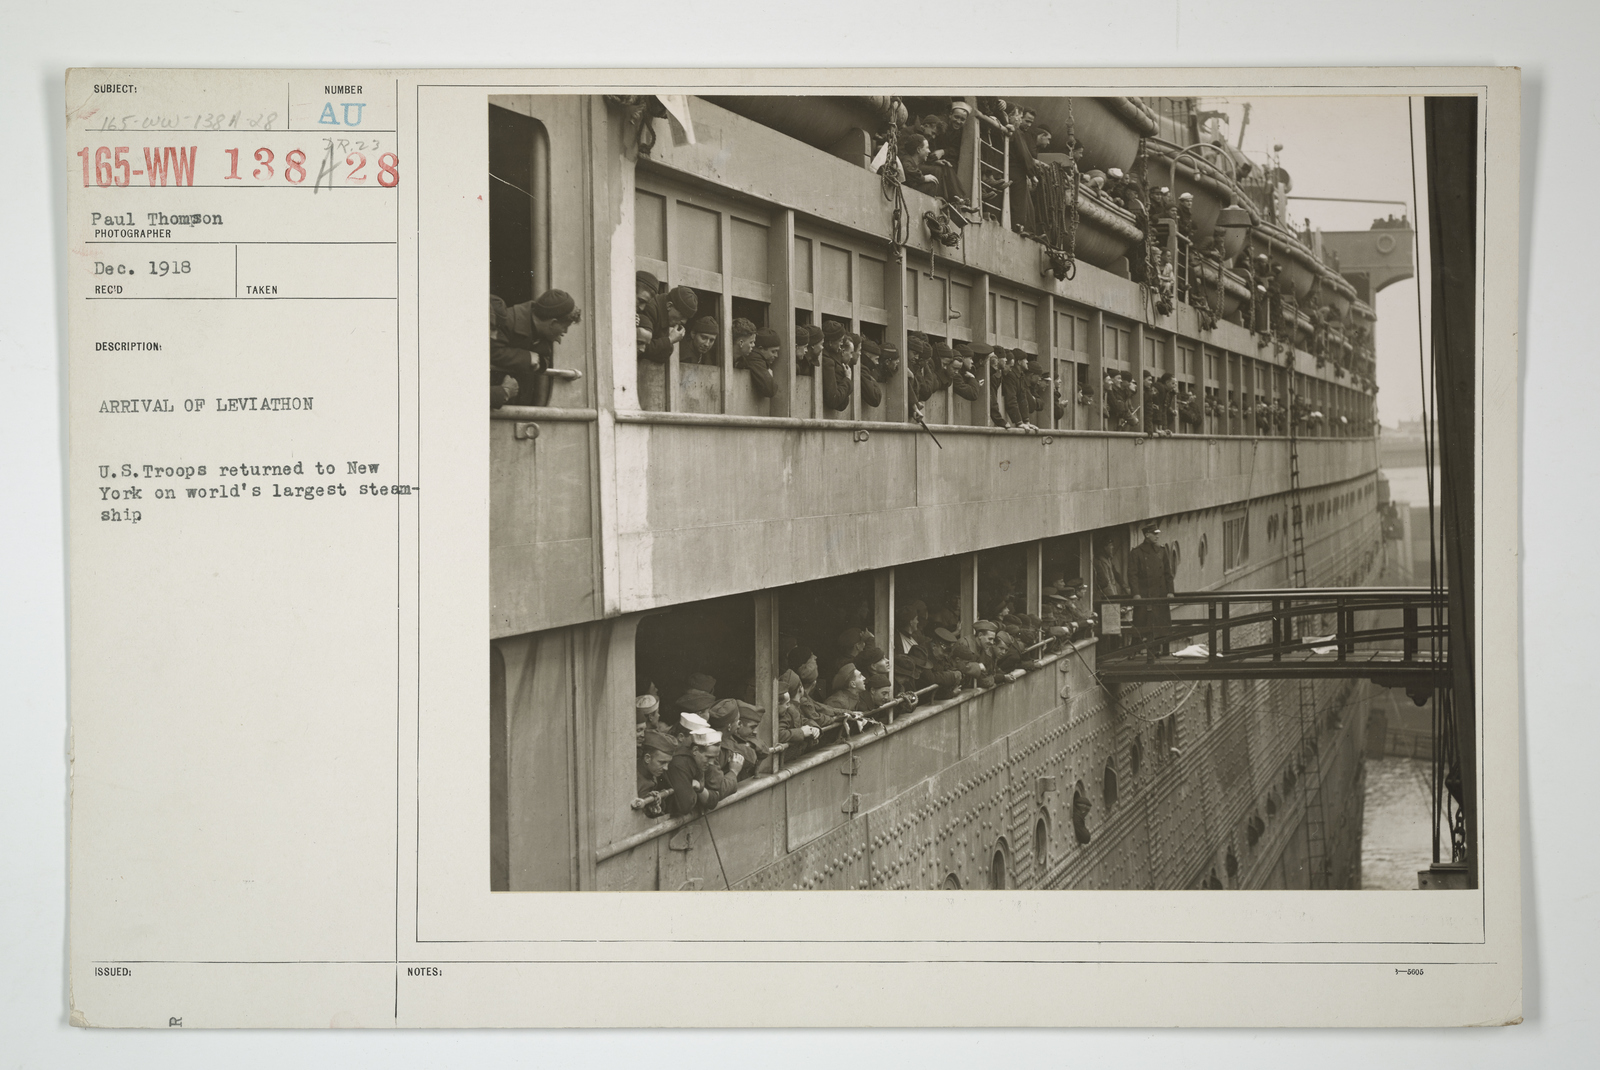 Demobilization - Miscellaneous - Arrival of Leviathan. U.S. Troops returned to New York on world's largest steamship